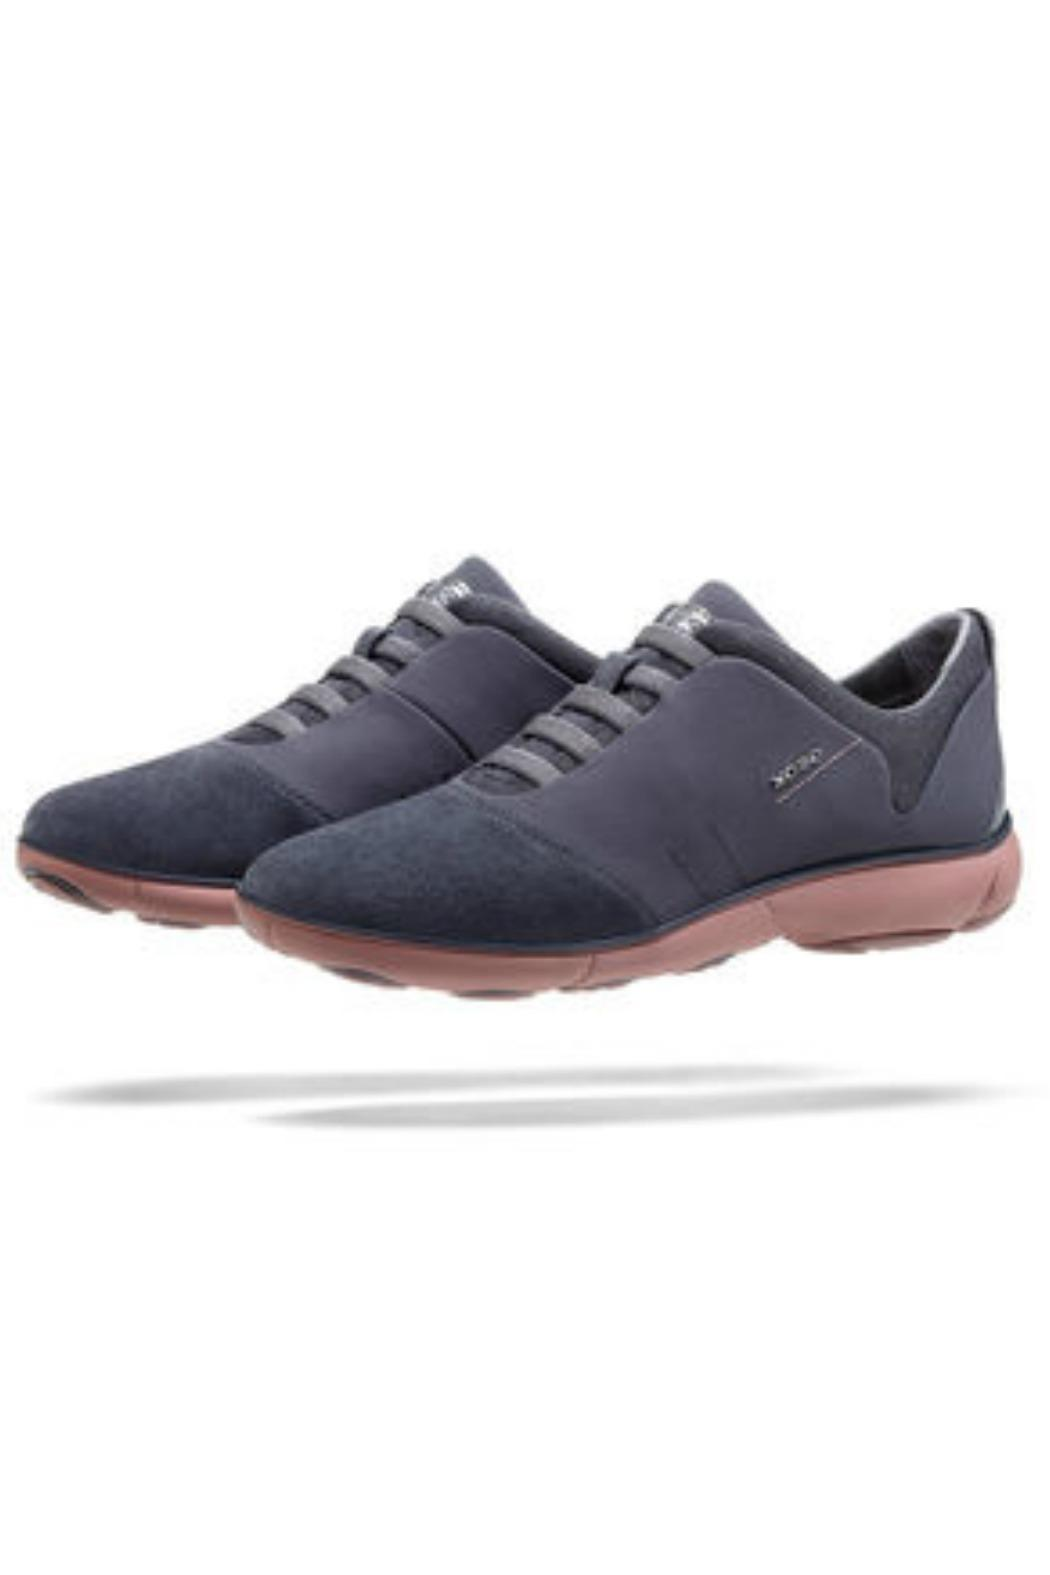 Geox Nebula Sneaker from Vancouver by Kalena s Italian Shoes ... 2b175fbe3e